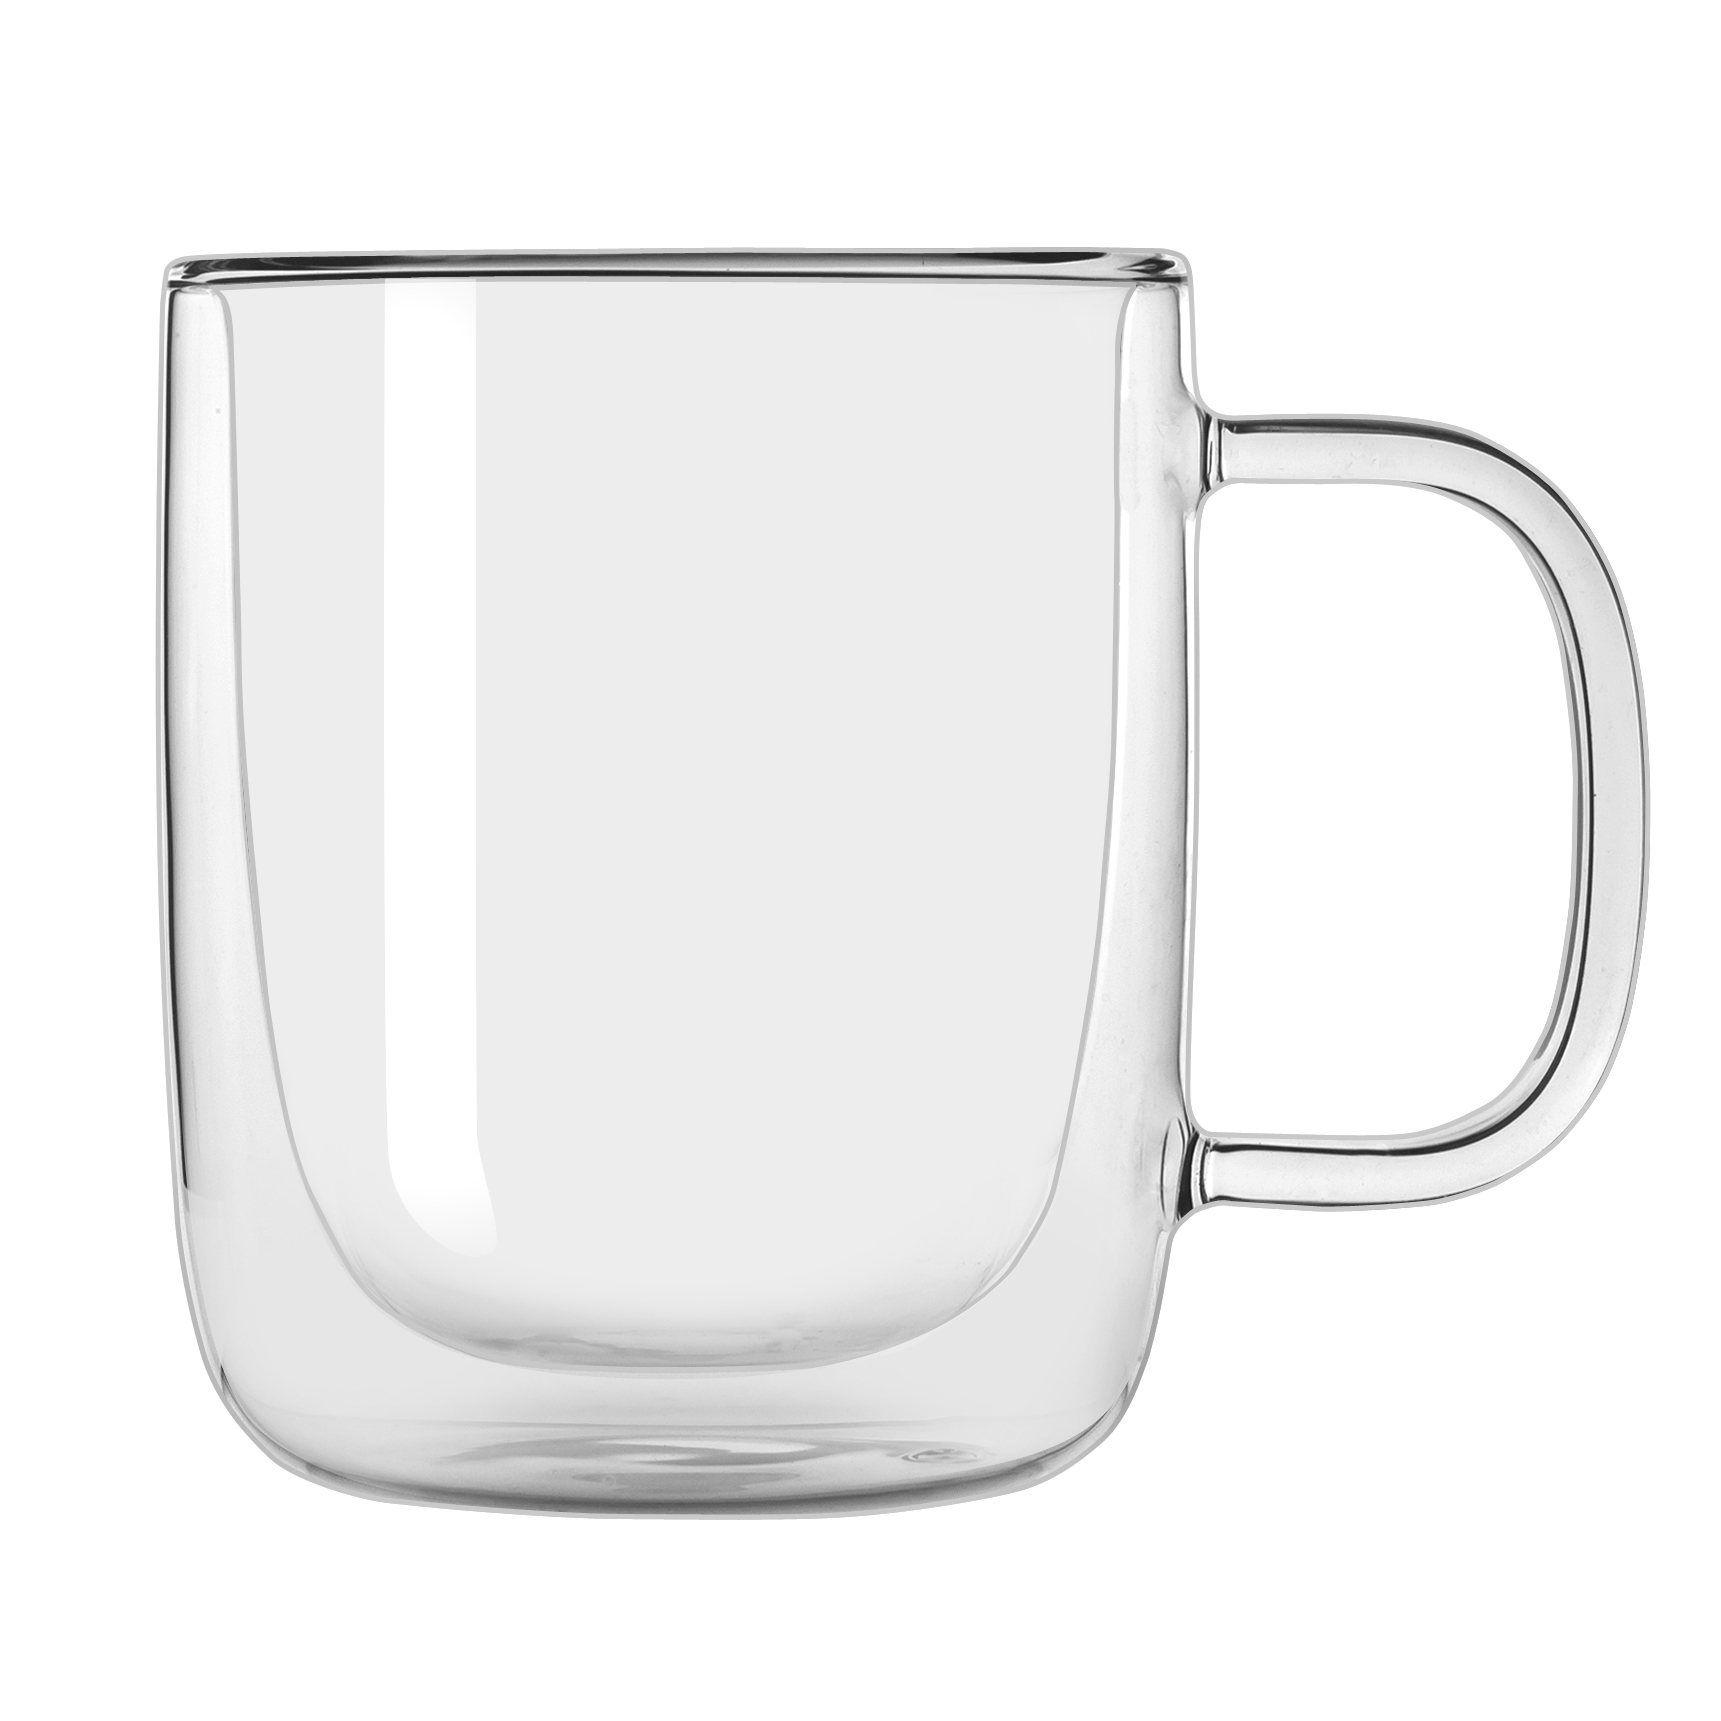 Libbey Glass VS75100 mug, glass, coffee